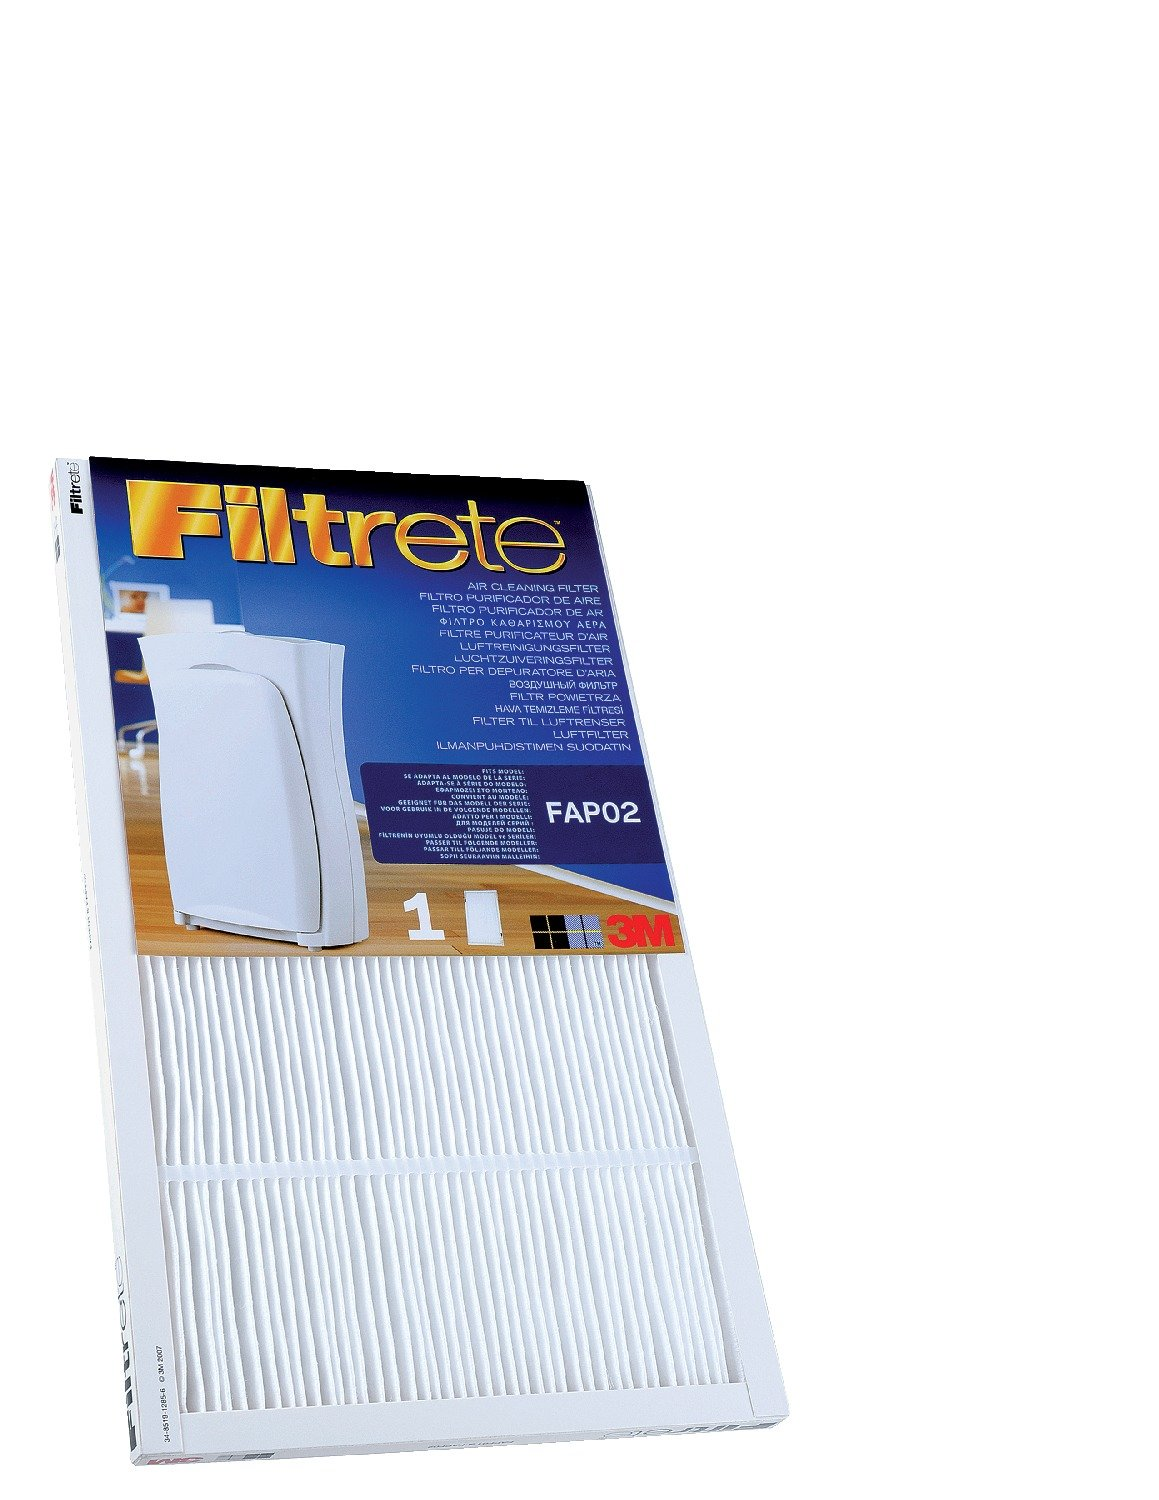 filtrete fapf0102 ultra clean small air purifier replacement filter for filtrete air purifier model fap01 and fap02 1 filter amazoncouk kitchen u0026 - Filtrete Air Filter